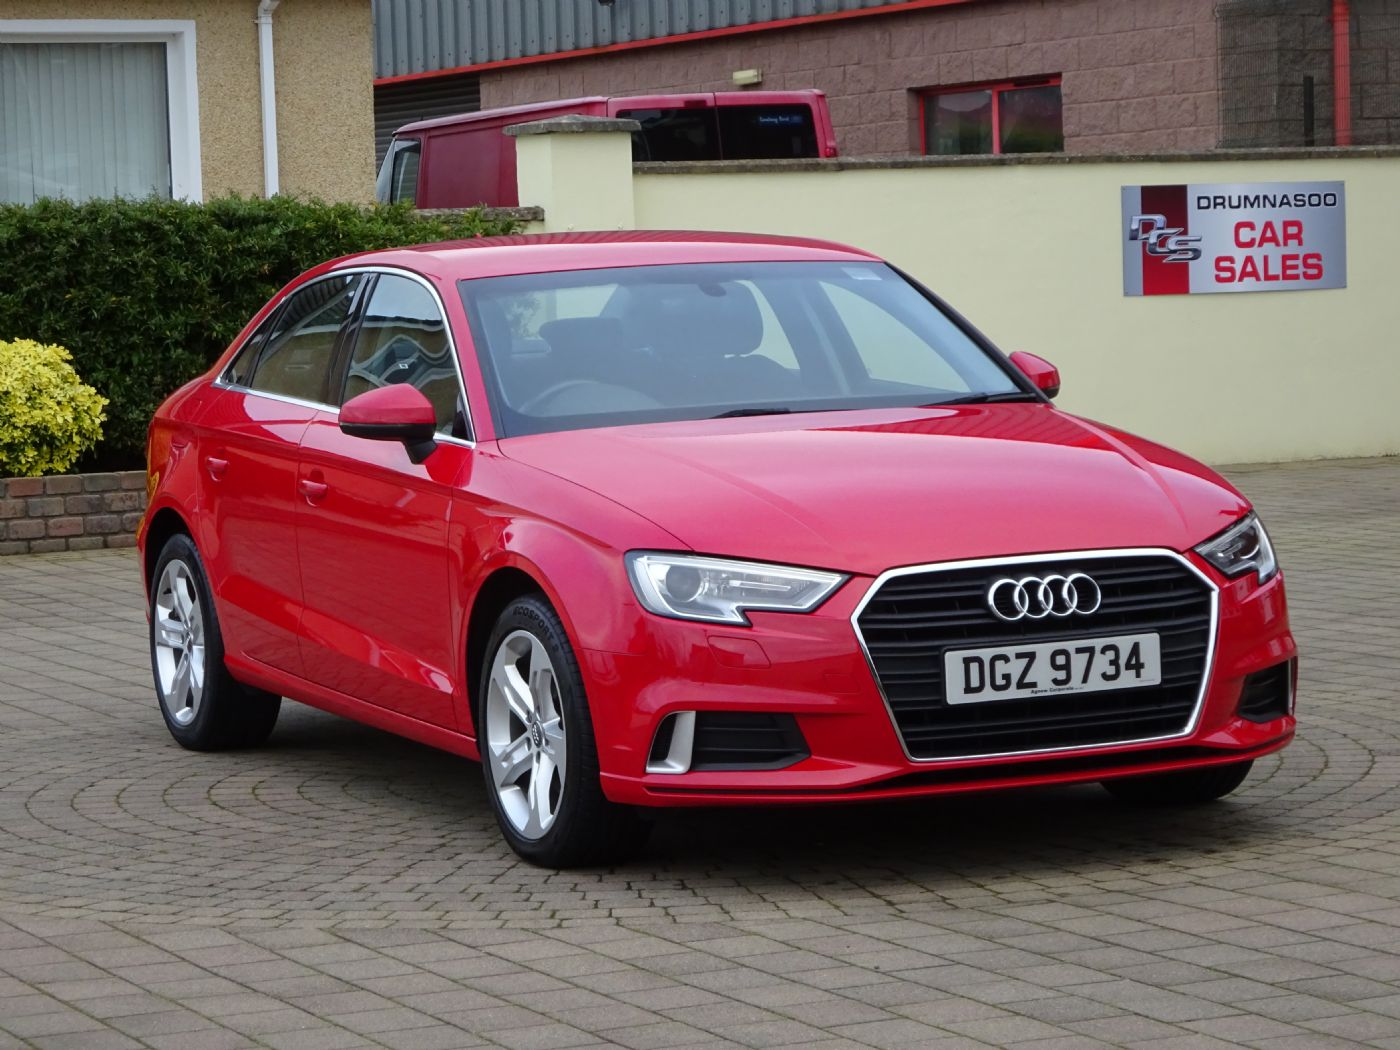 Audi A3 Sport 1.6  TDI, Sat nav, Sports seats, £20 Road tax